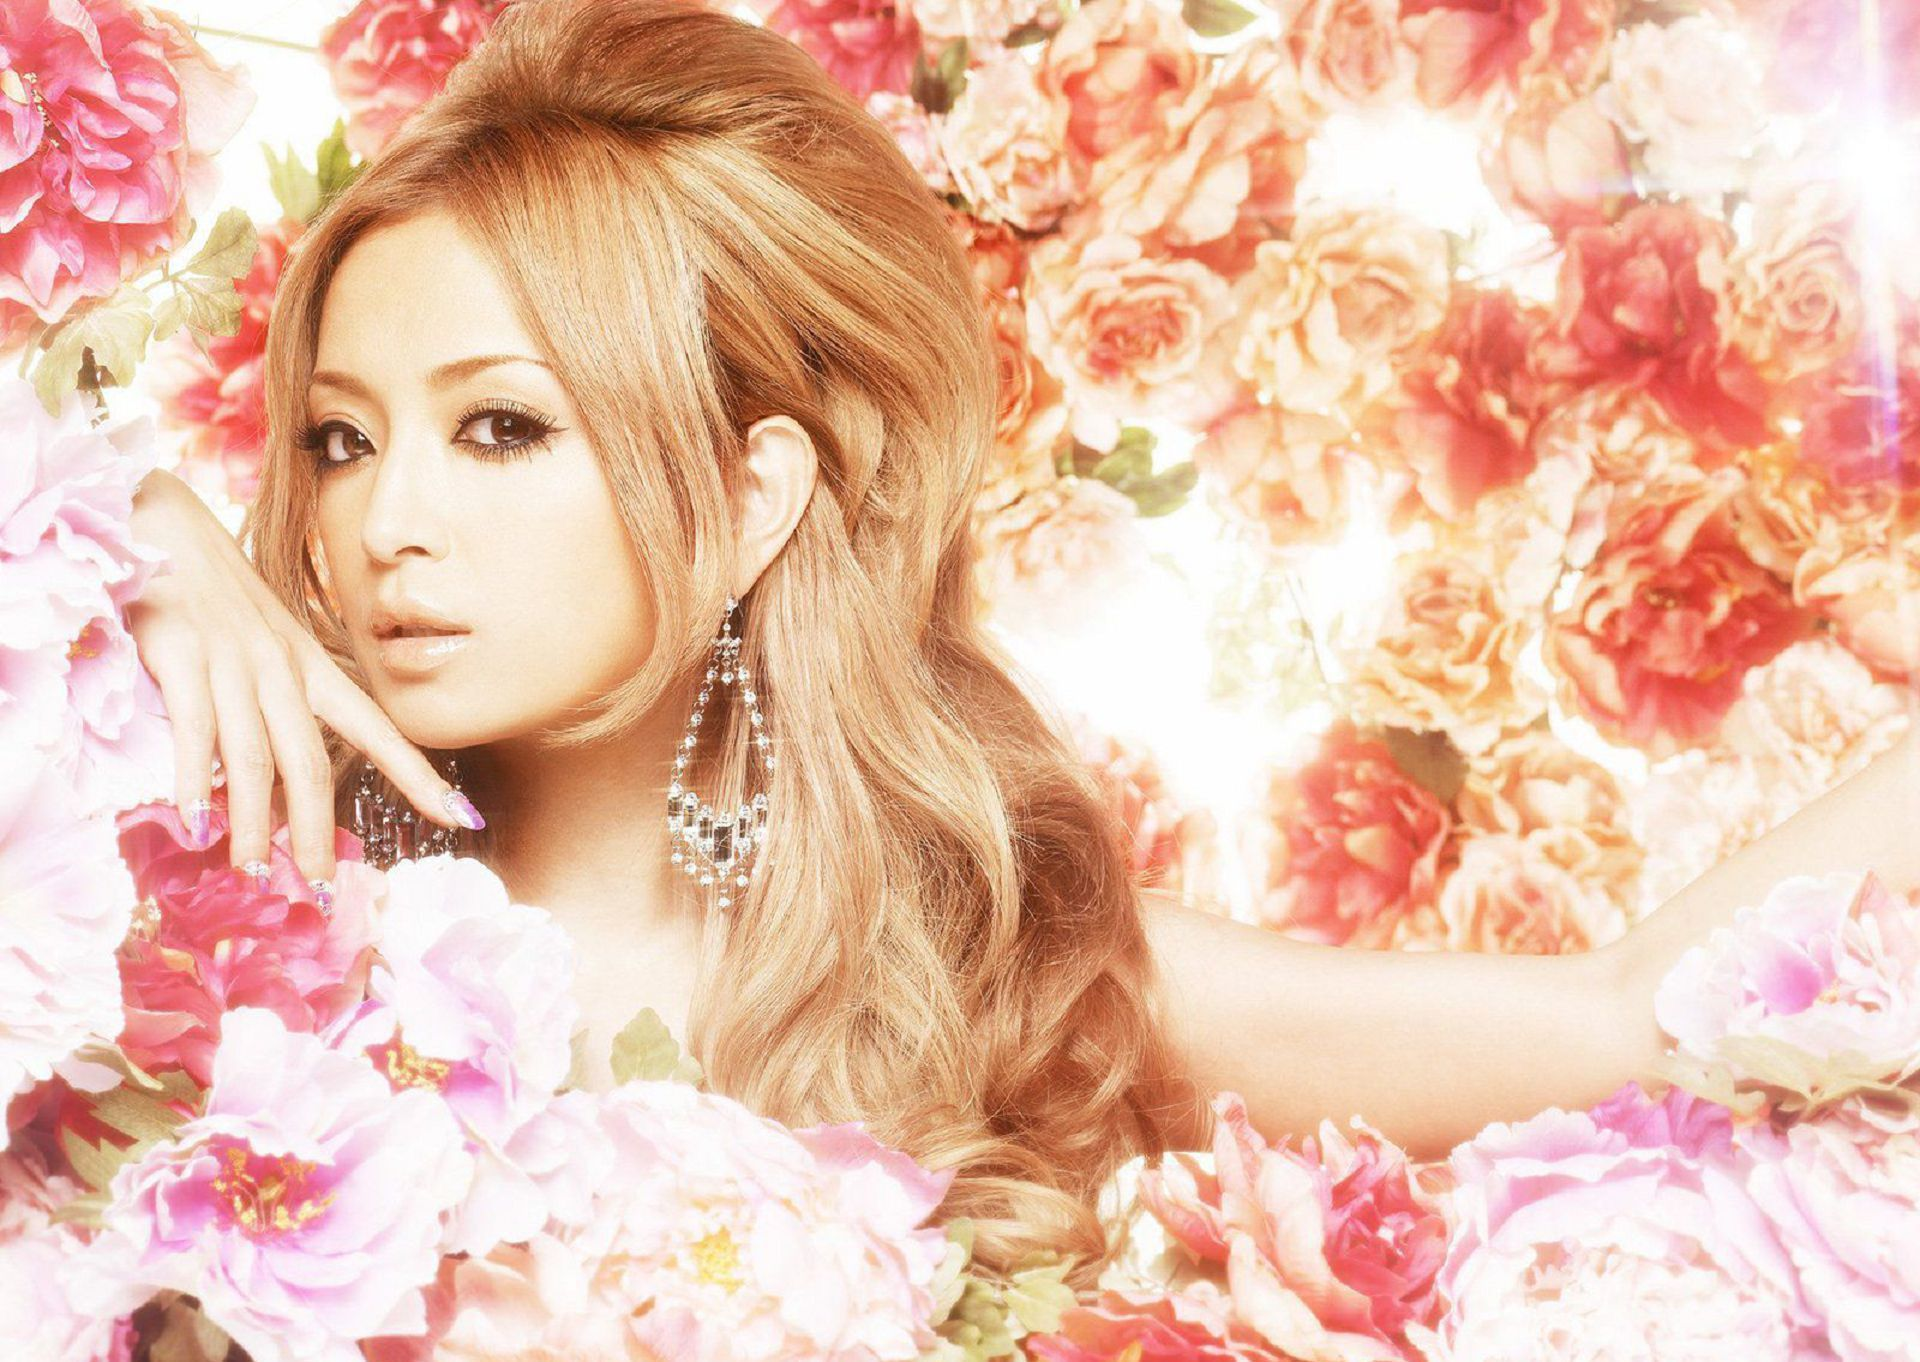 Ayumi Hamasaki In High Resolution